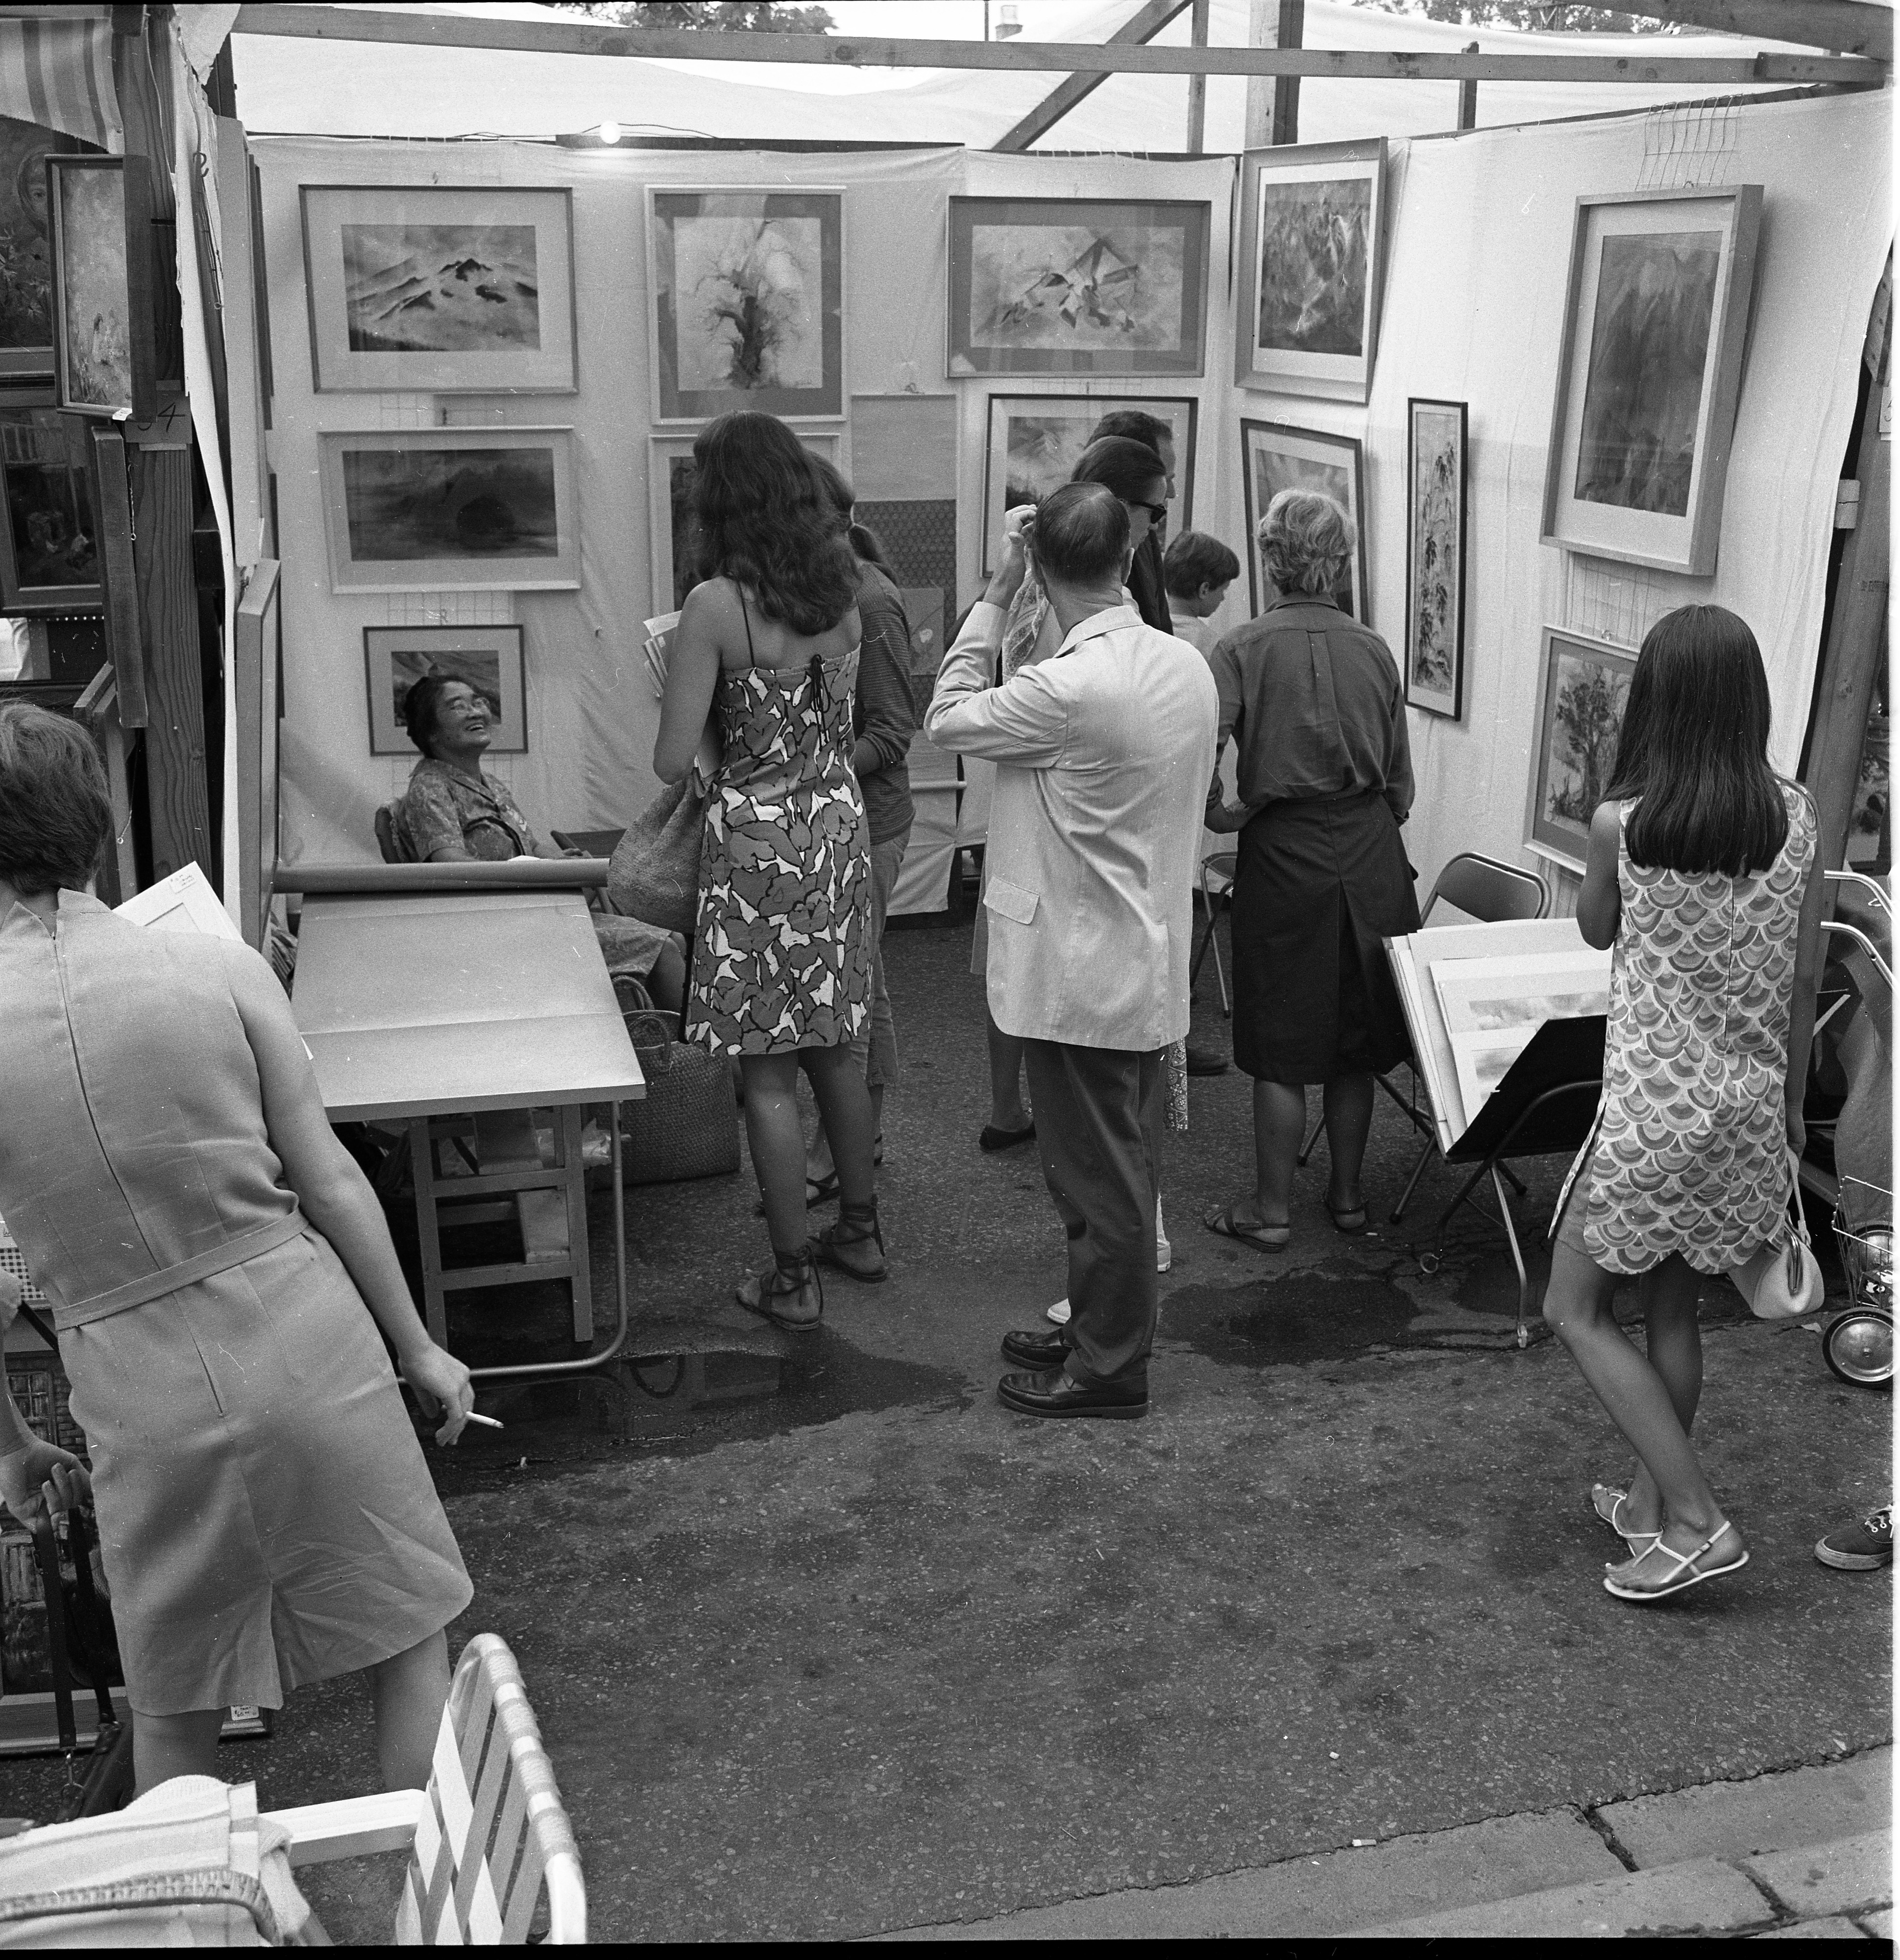 Artist, Hanako Yamagiwa At Ann Arbor's Street Art Fair, July 20, 1967 image